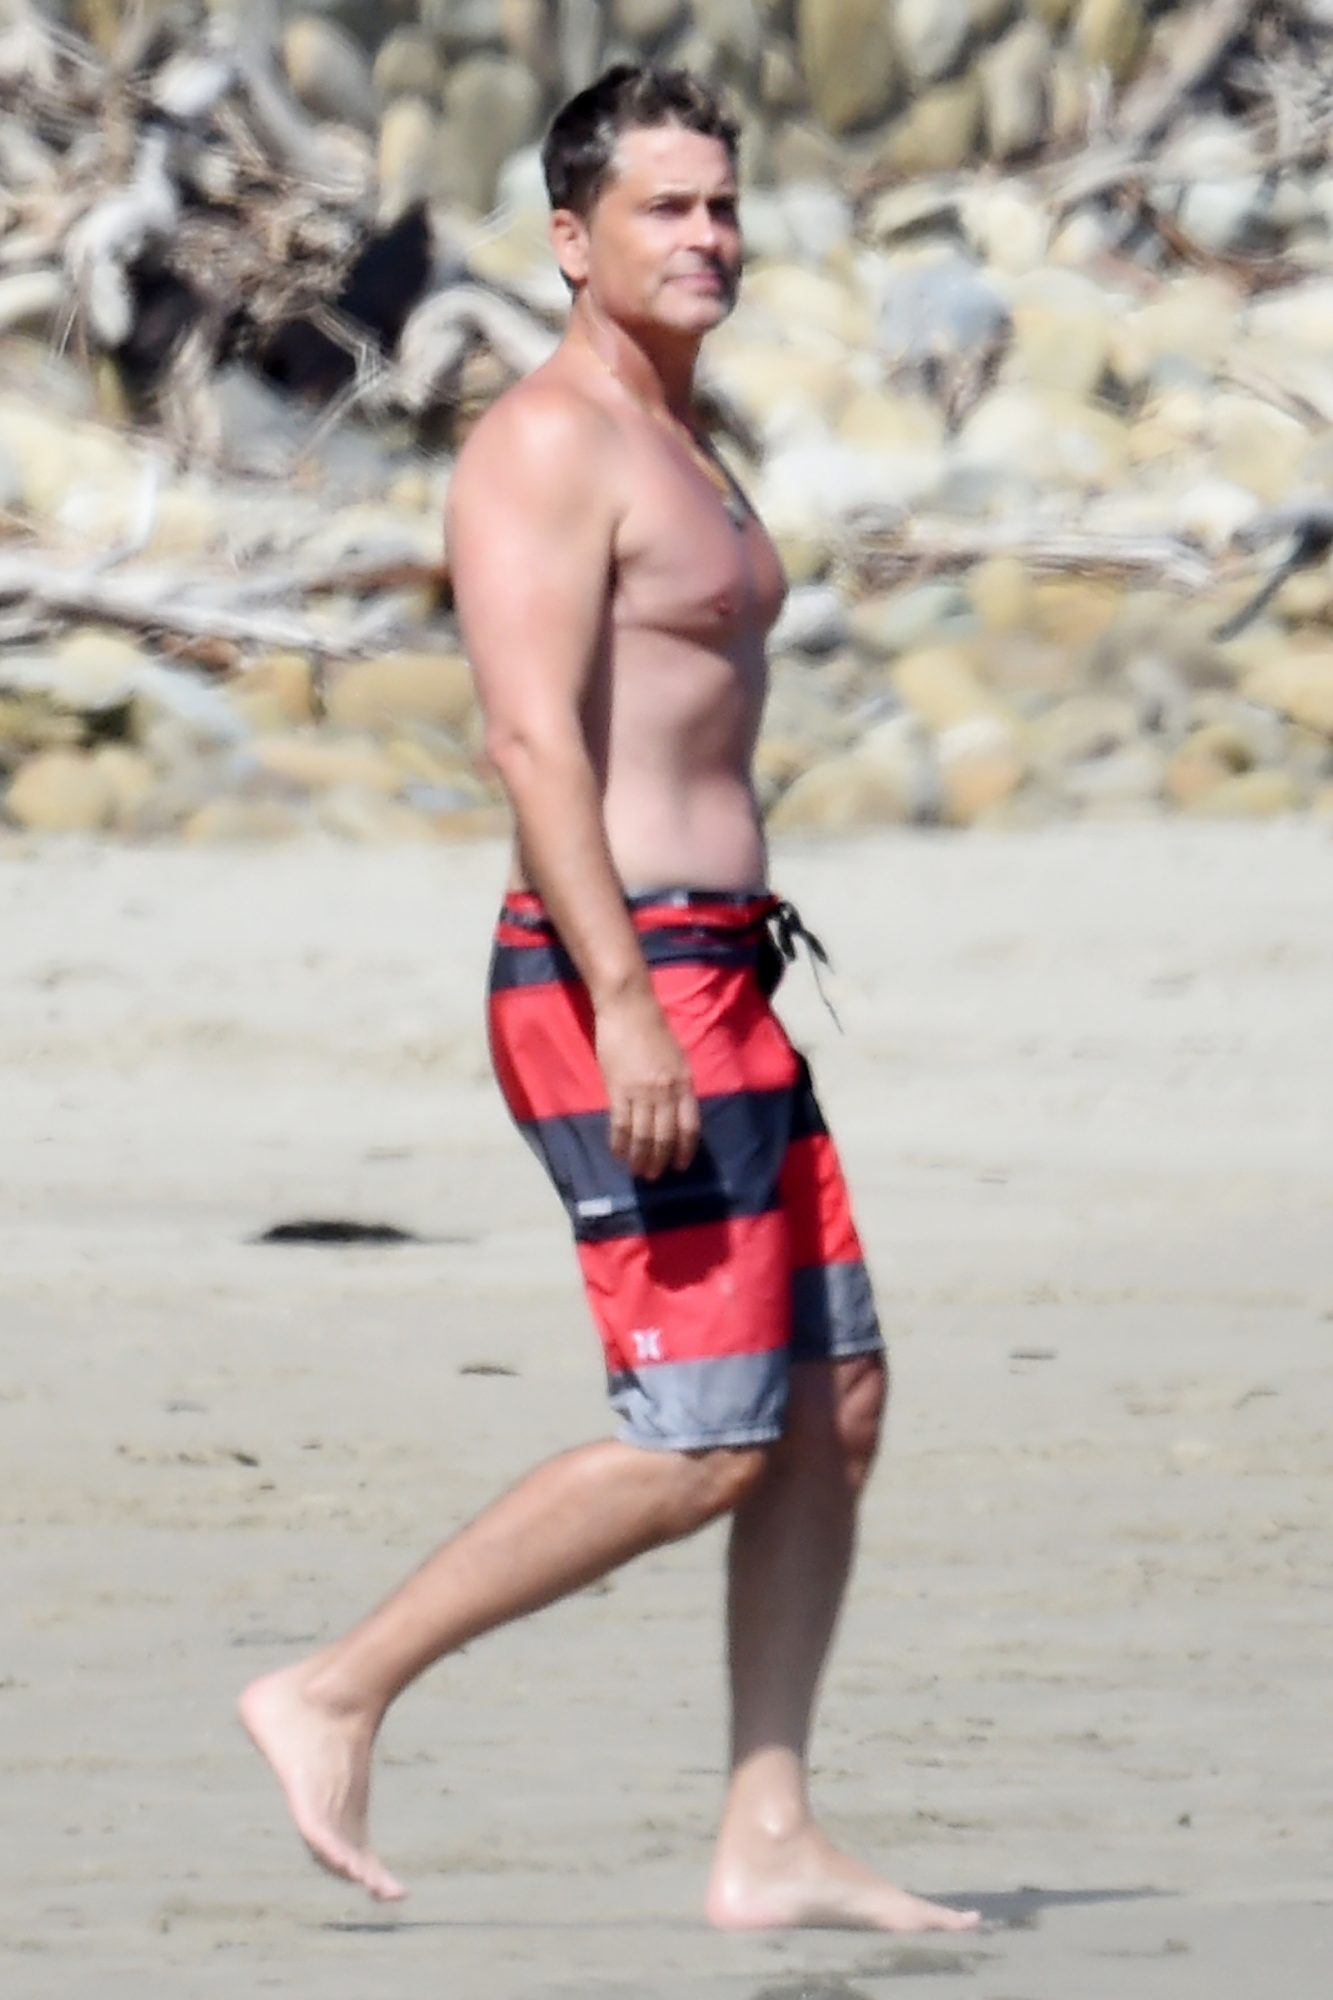 Rob Lowe goes shirtless jumping into the ocean with his son Matthew at the beach on Easter weekend in Santa Barbara Saturday